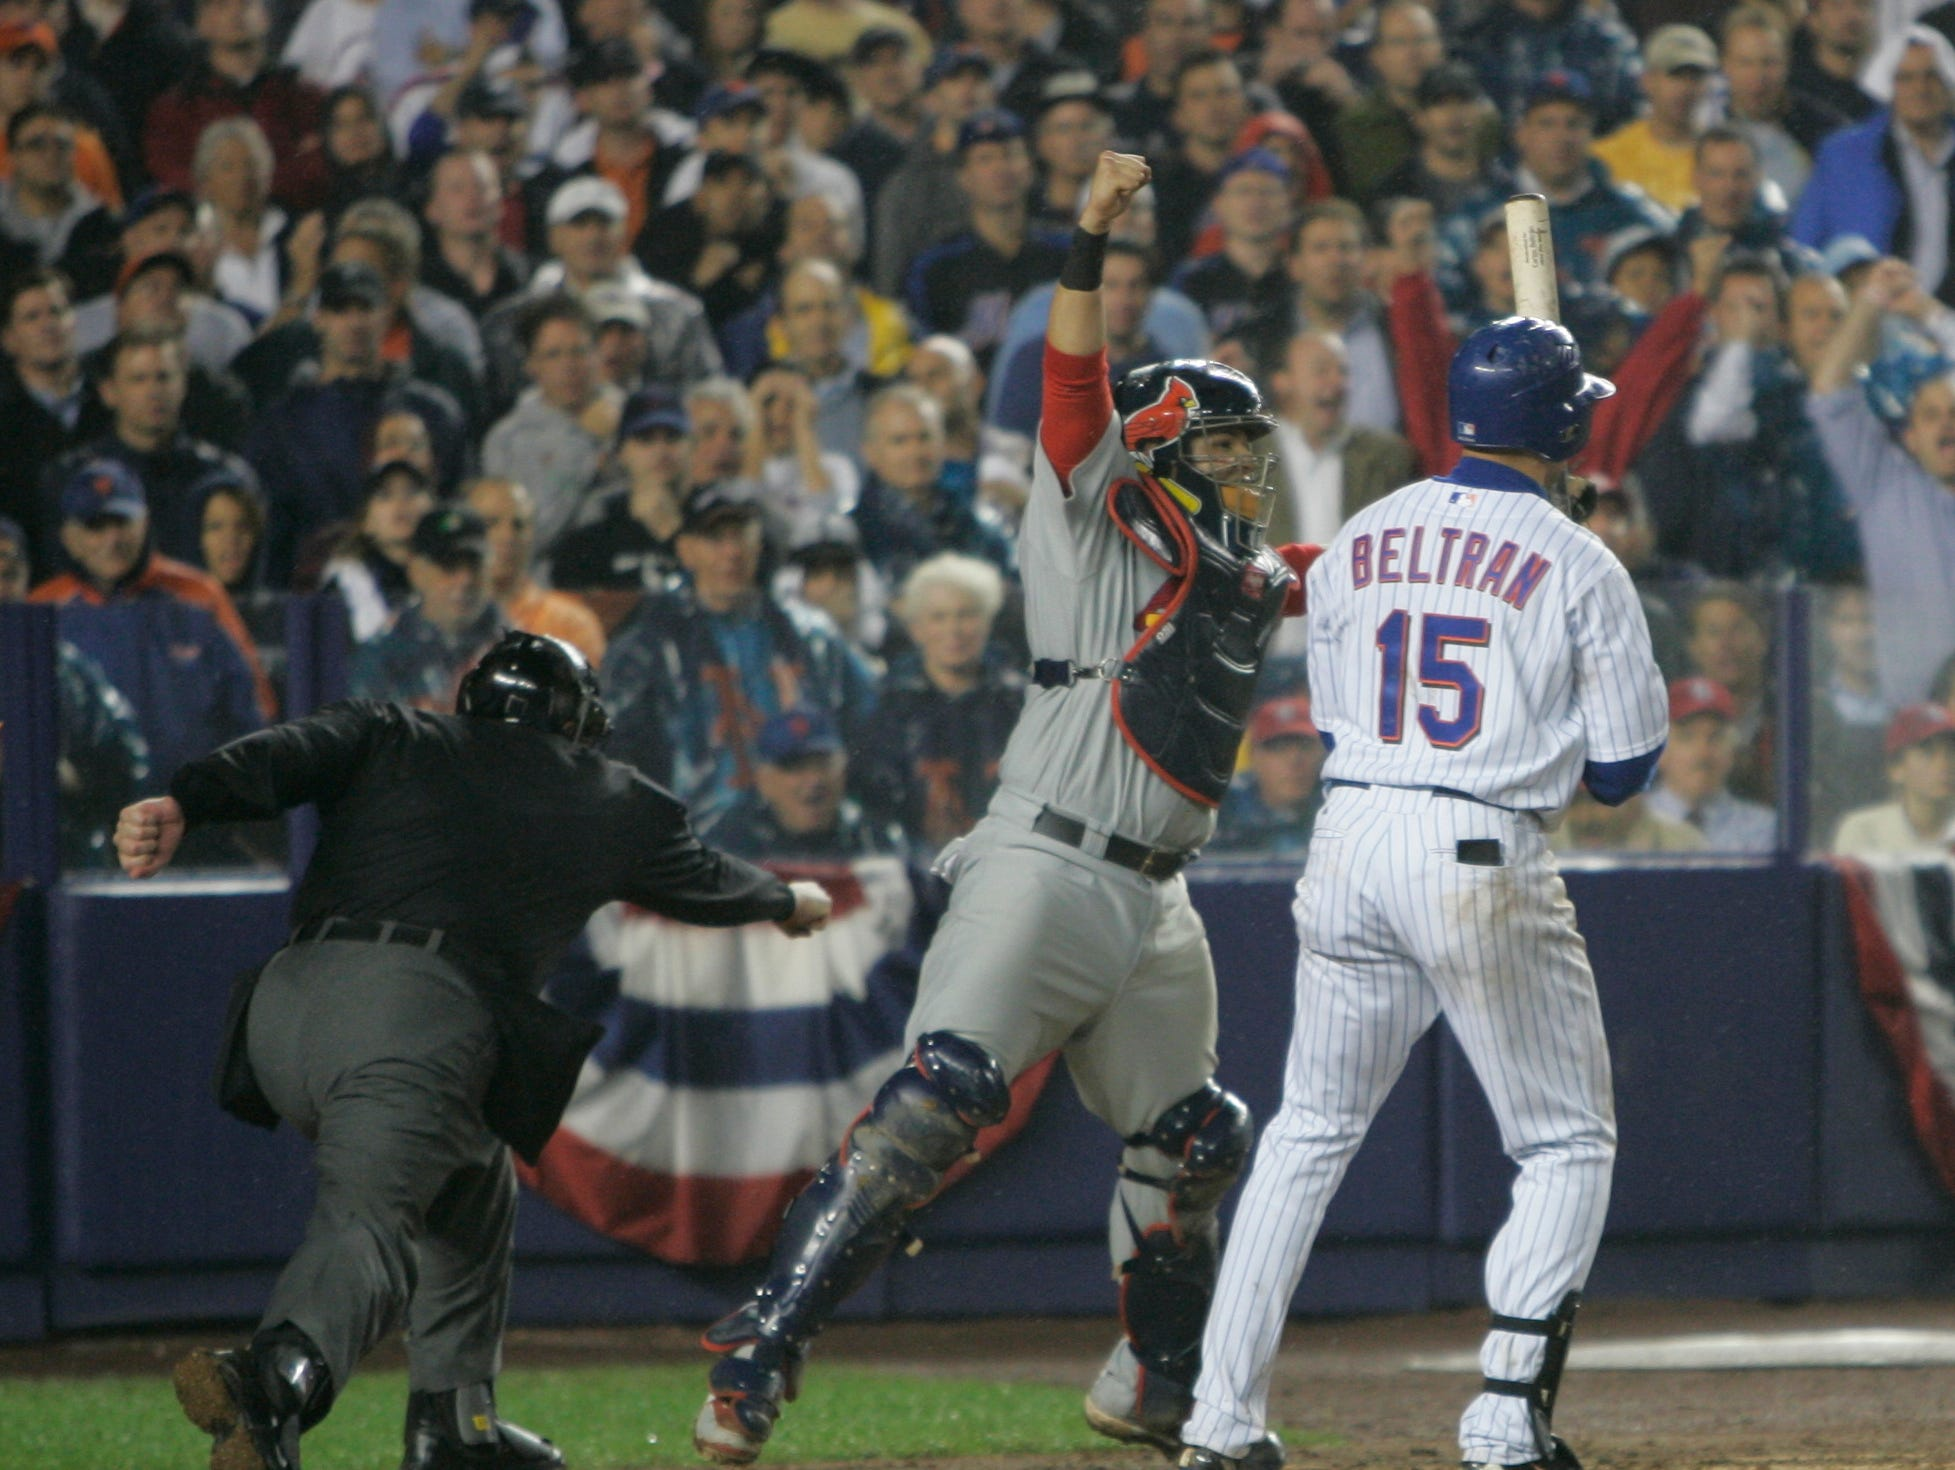 2006 NLCS Game 7: Mets center fielder Carlos Beltran struck out looking with the bases loaded on a curveball from Adam Wainwright, winning the series for the Cardinals.